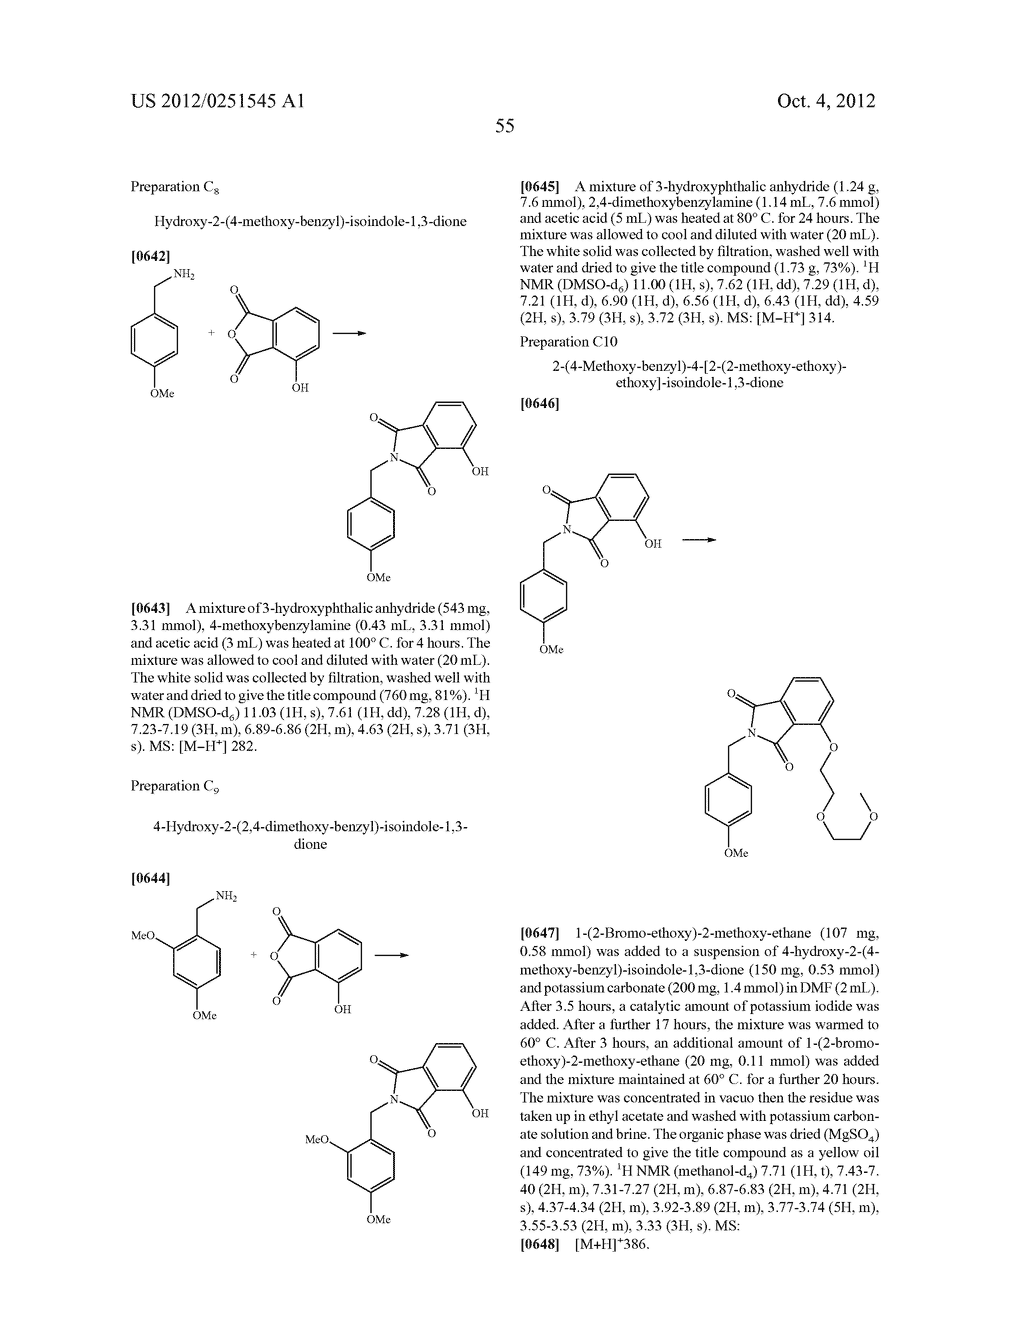 Therapeutic Combinations Of Hydroxybenzamide Derivatives As Inhibitors Of     HSP90 - diagram, schematic, and image 56